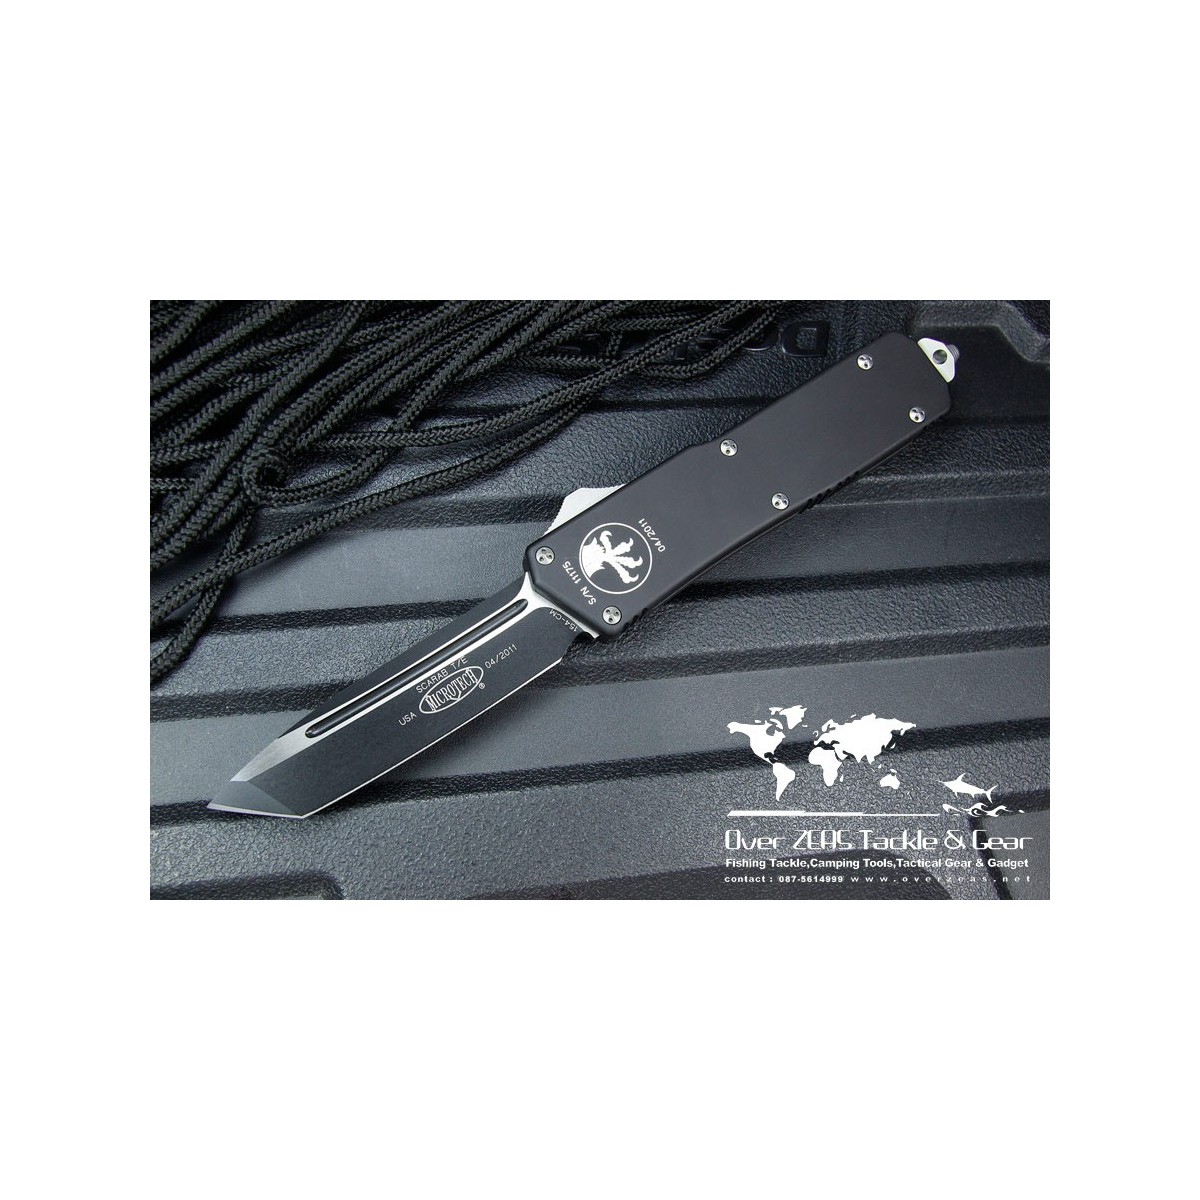 "มีดออโต้ Microtech Scarab Executive OTF Tanto Automatic Knife (3.5"" Black Plain) 108-1"